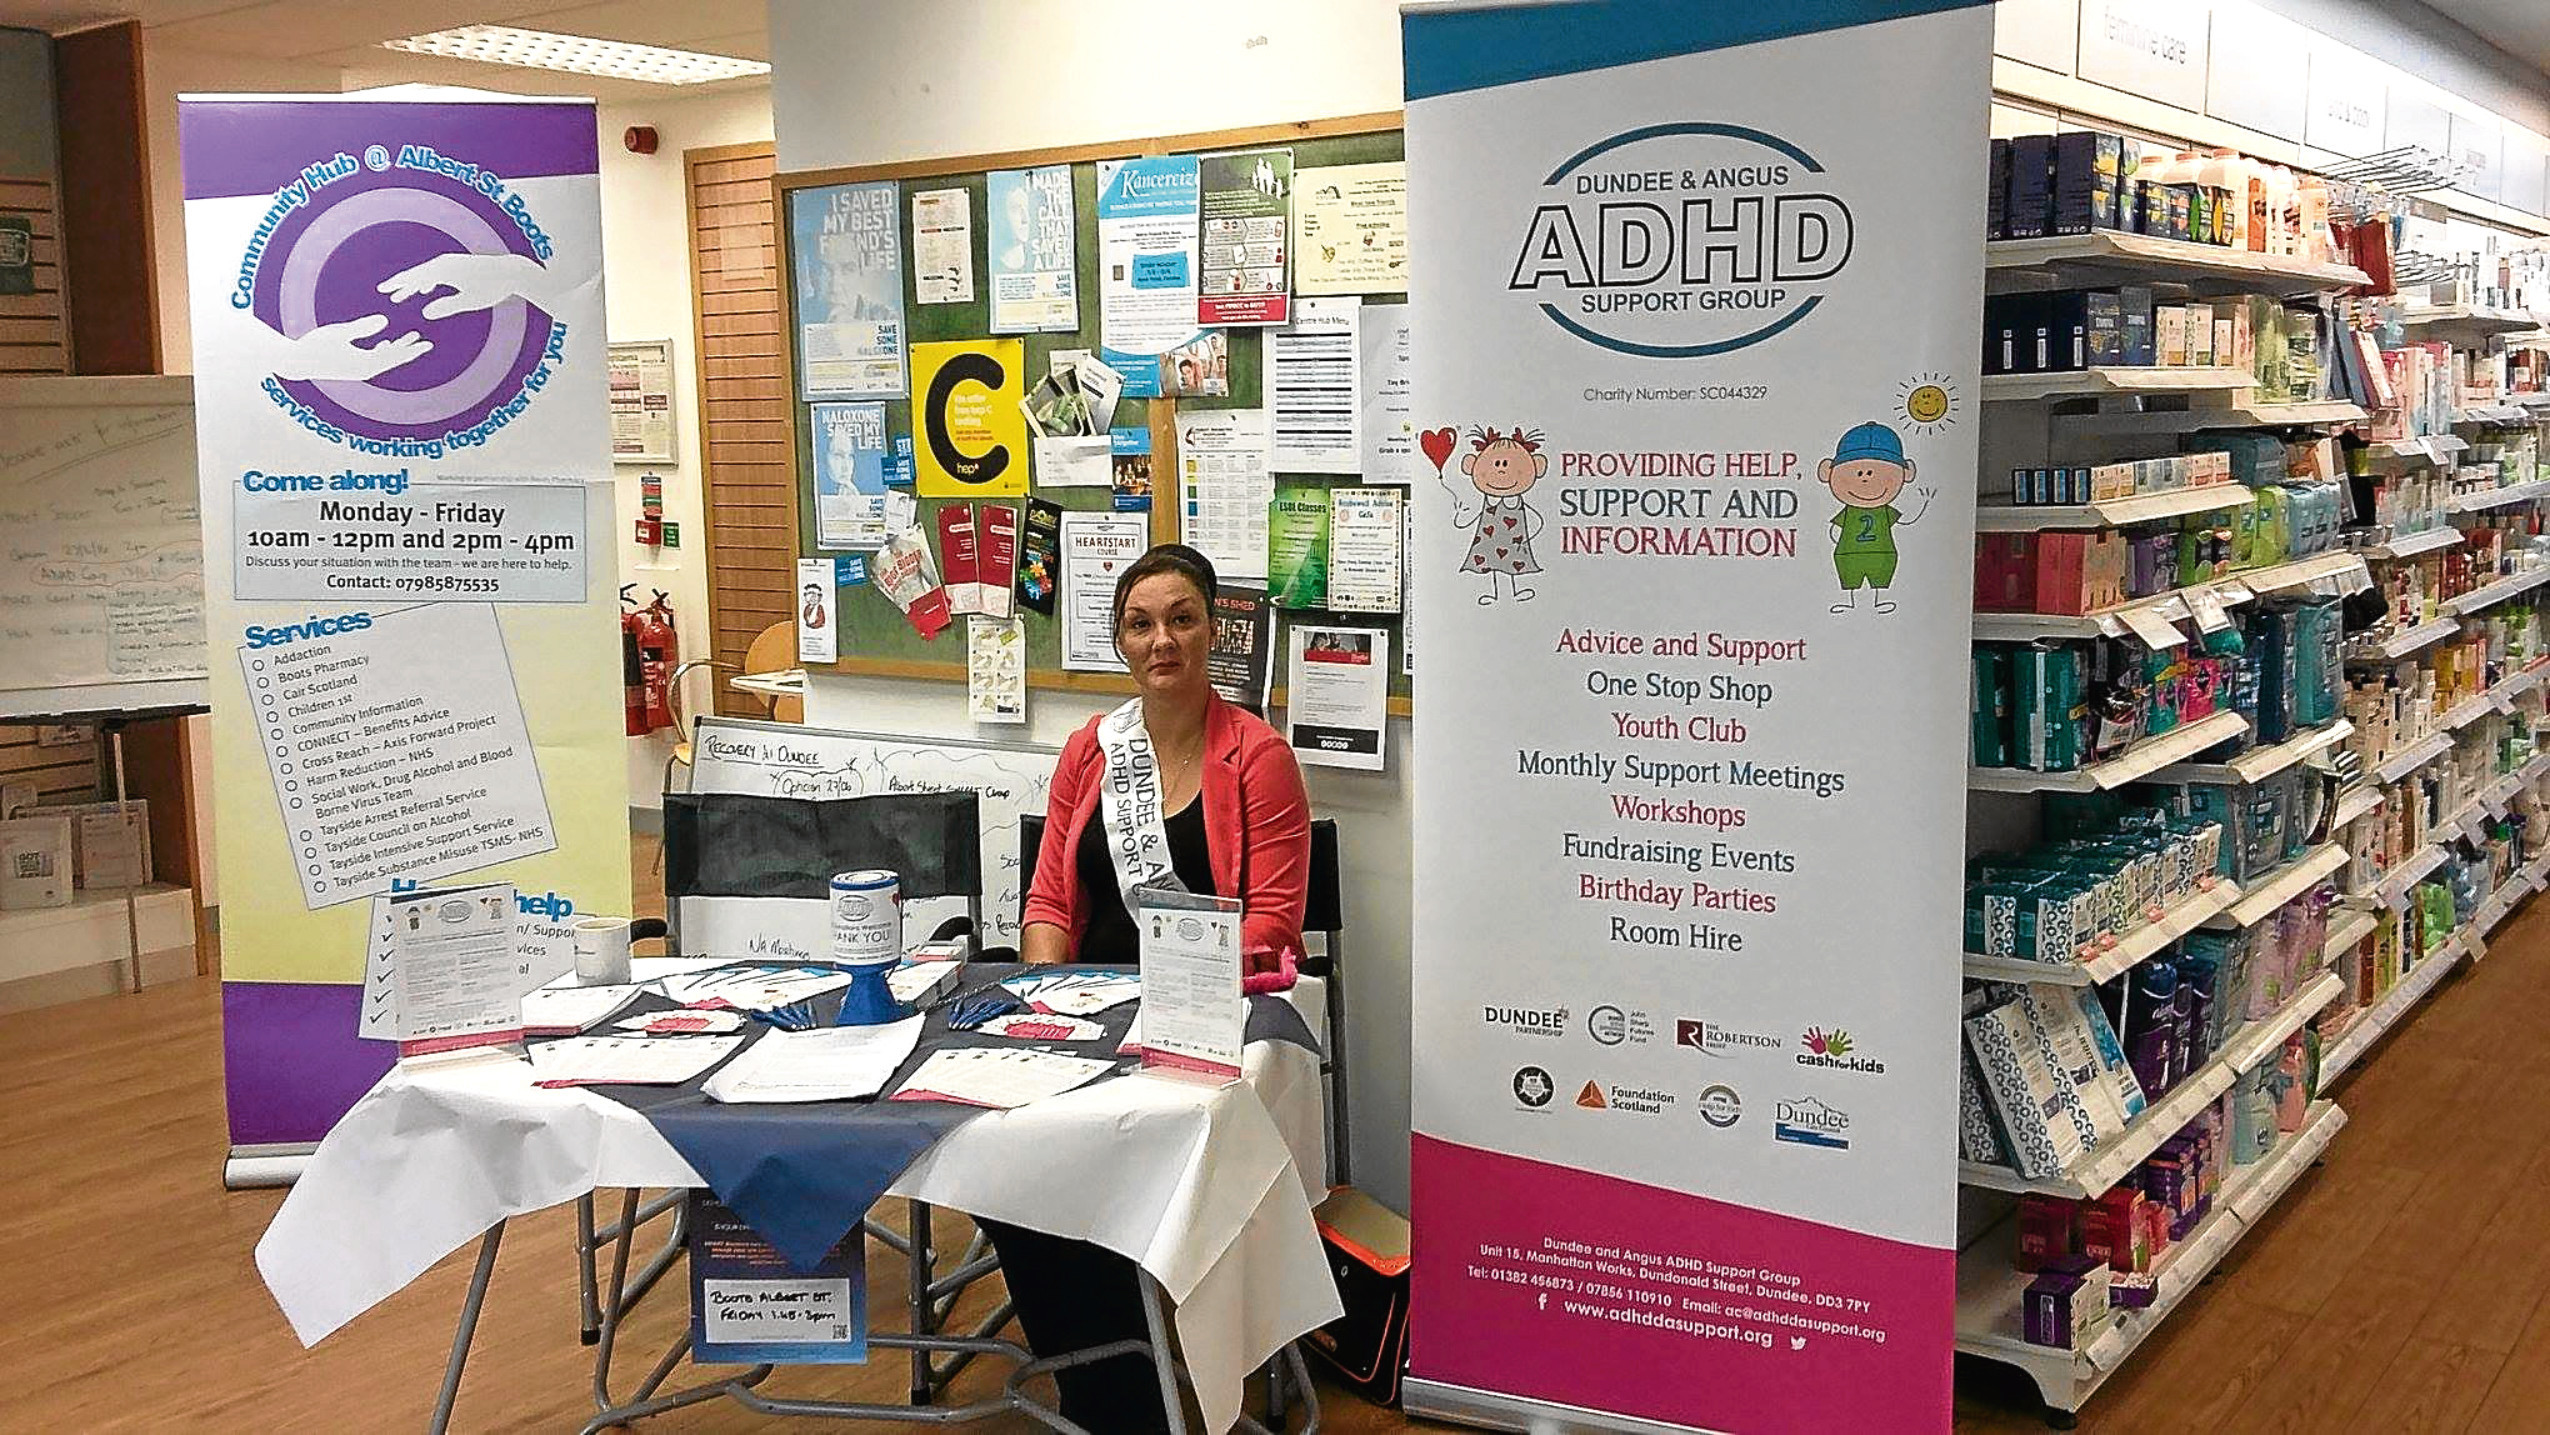 Vickie Lyon at a drop-in stall in the Boots Pharmacy at Stobswell promoting the services of ADHD